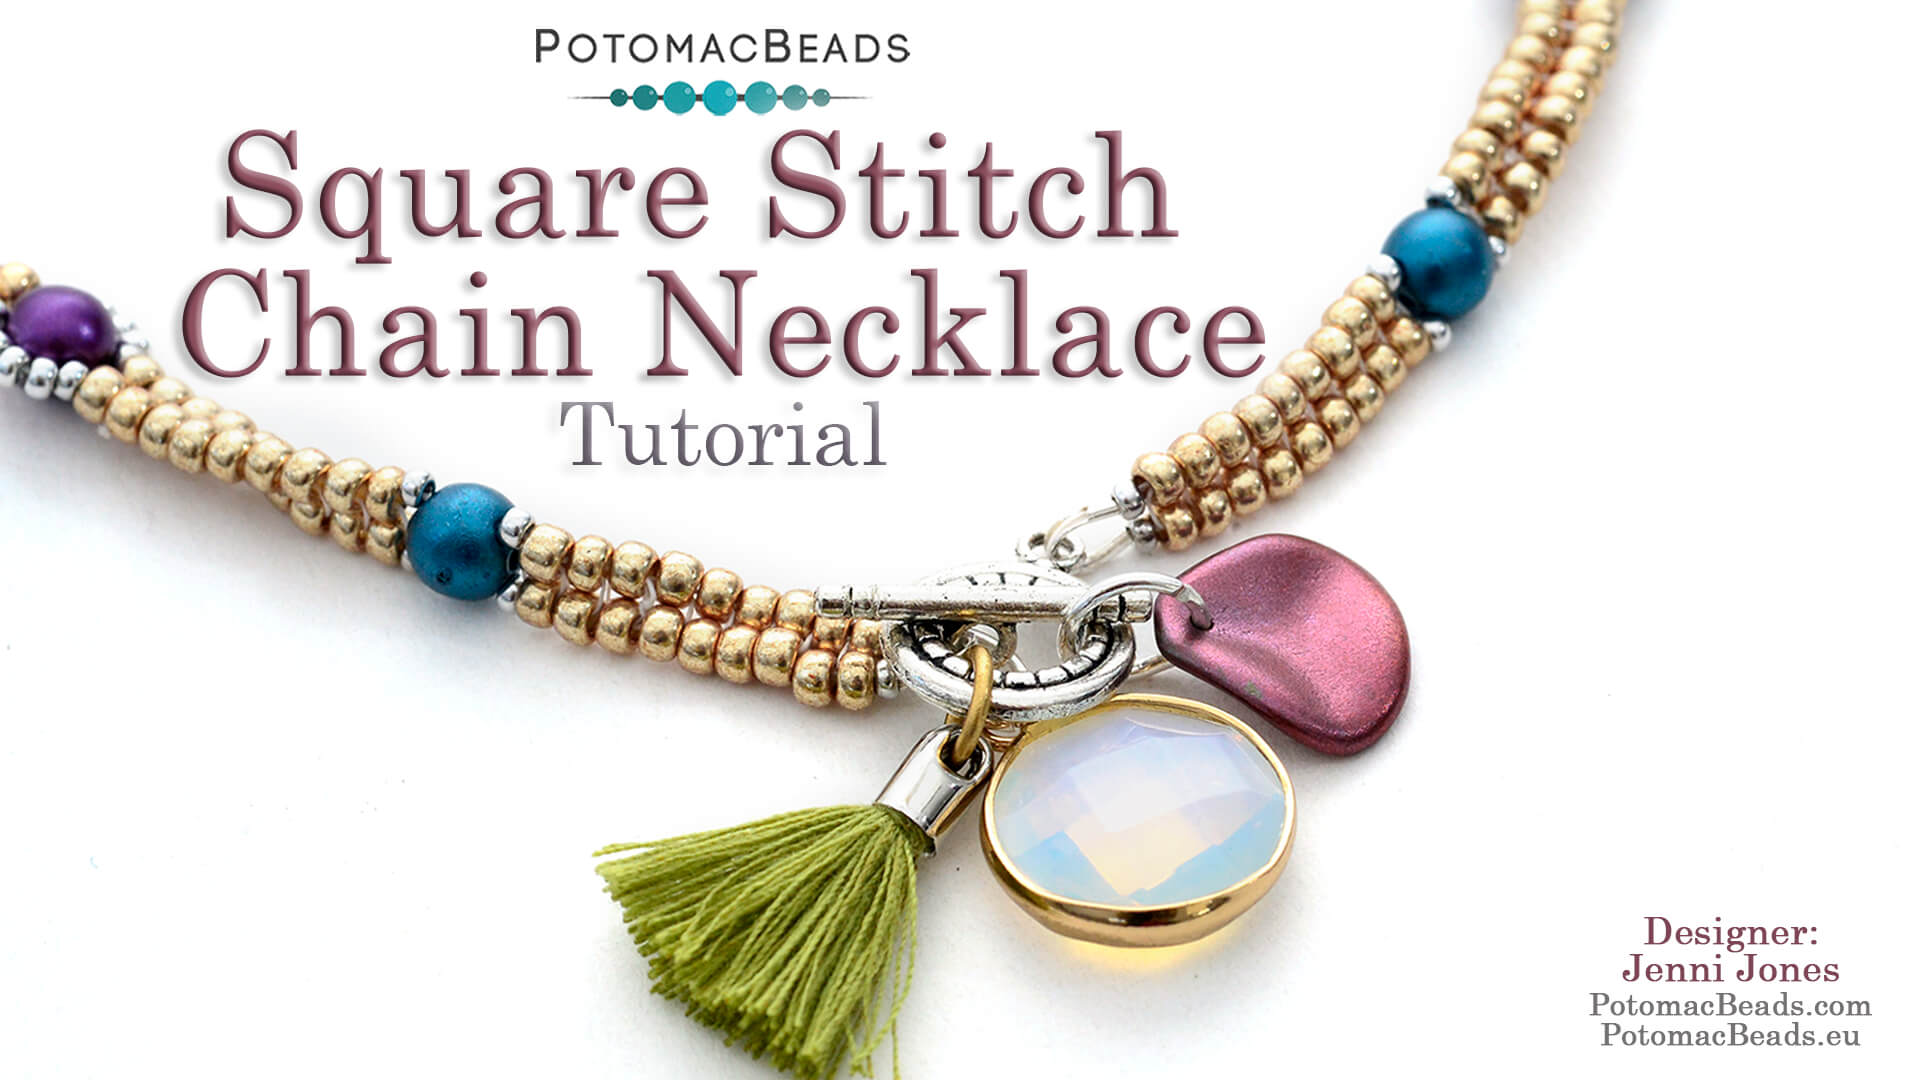 How to Bead Jewelry / Videos Sorted by Beads / Gemstone Videos / Square Stitch Chain Necklace Tutorial